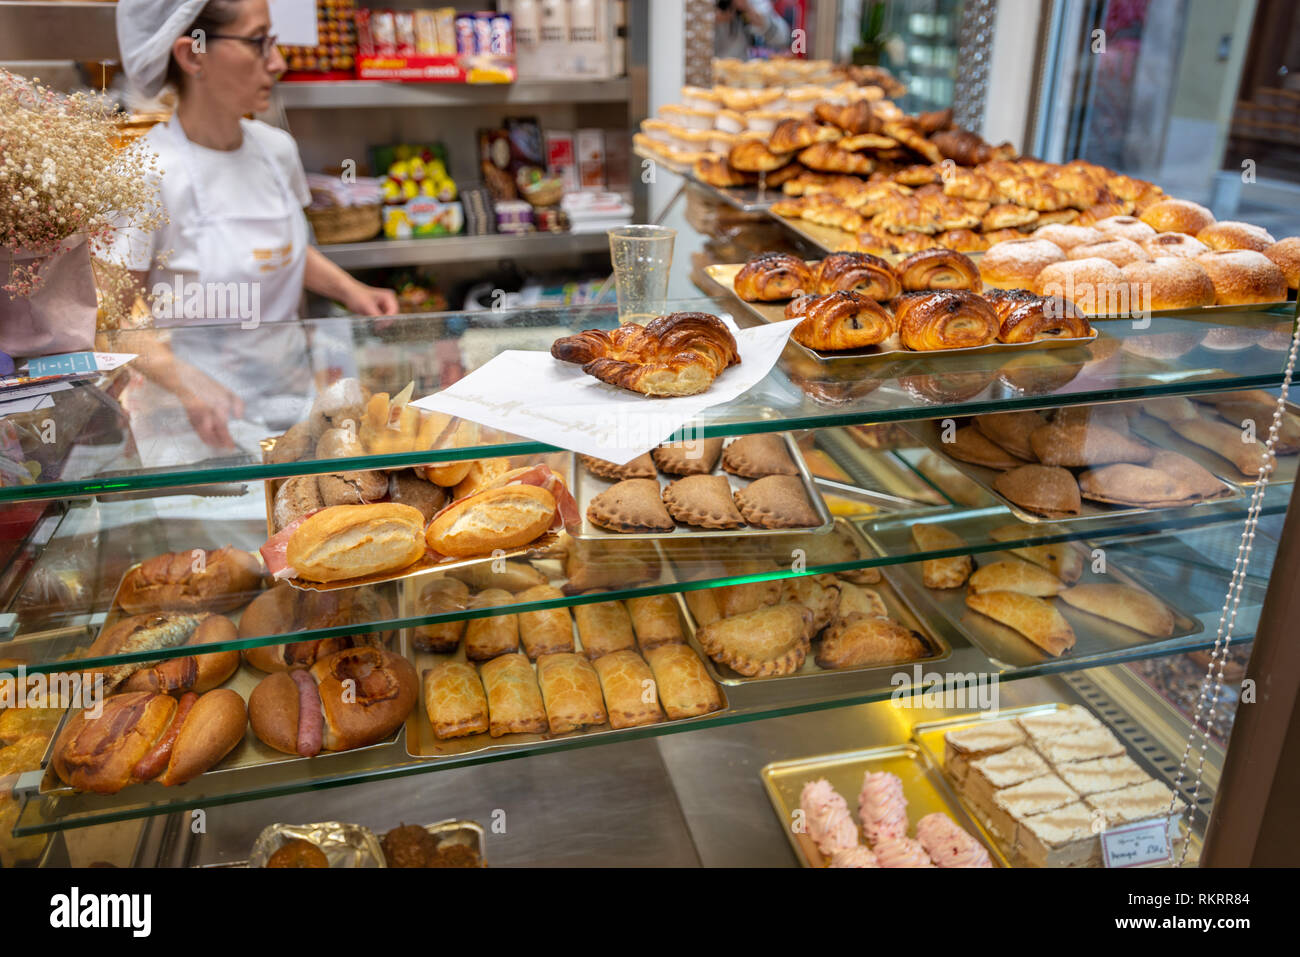 Cakes And Pastries On Display In A Bakery Shop In The City Of